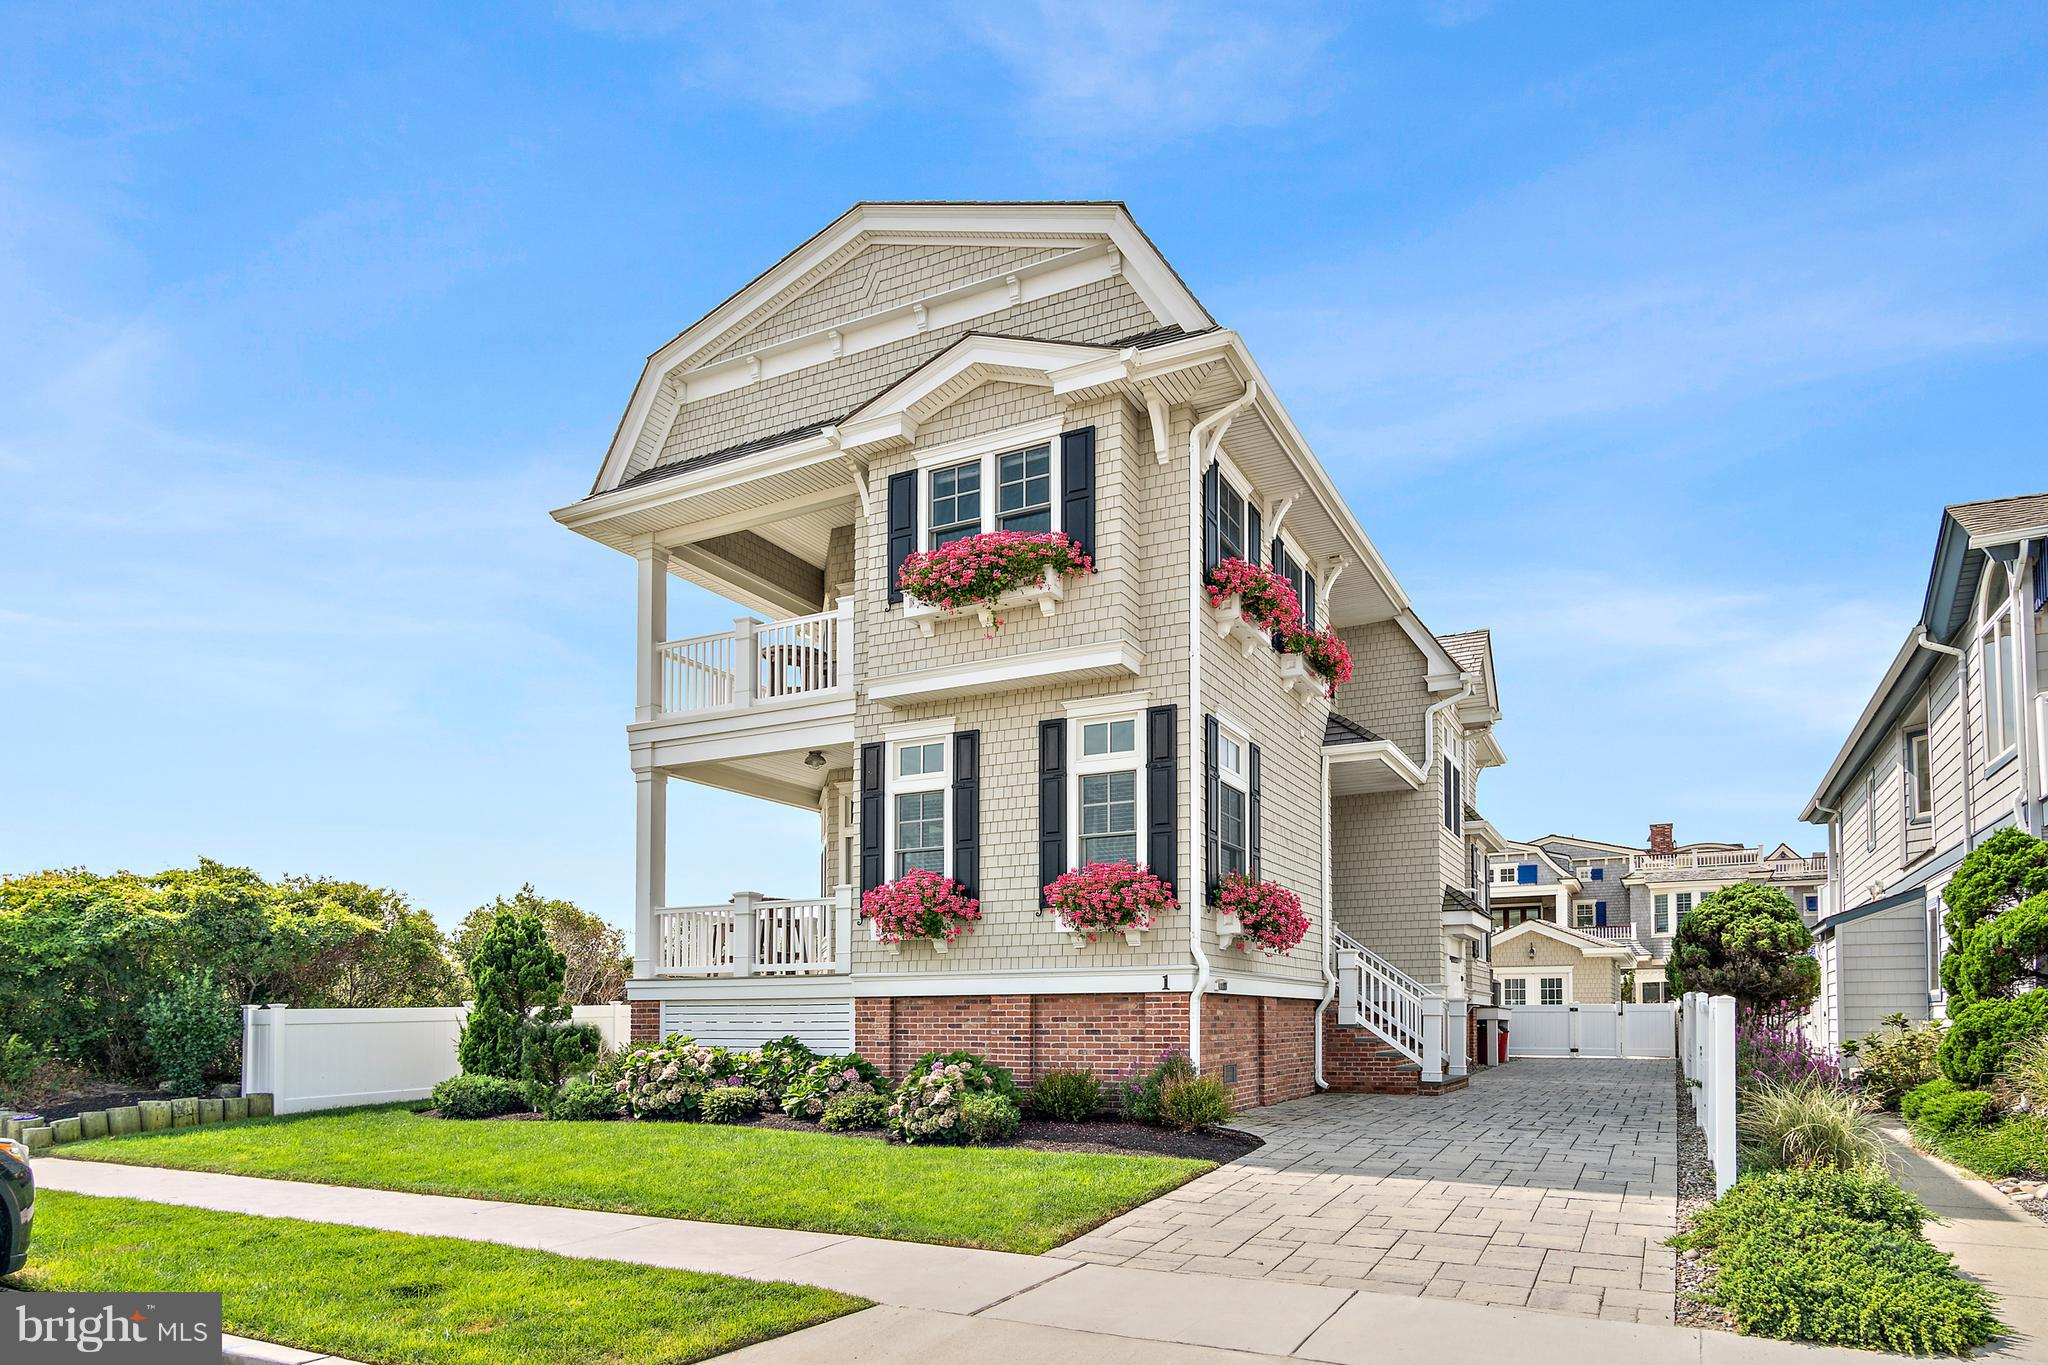 1 108TH STREET, STONE HARBOR, NJ 08247